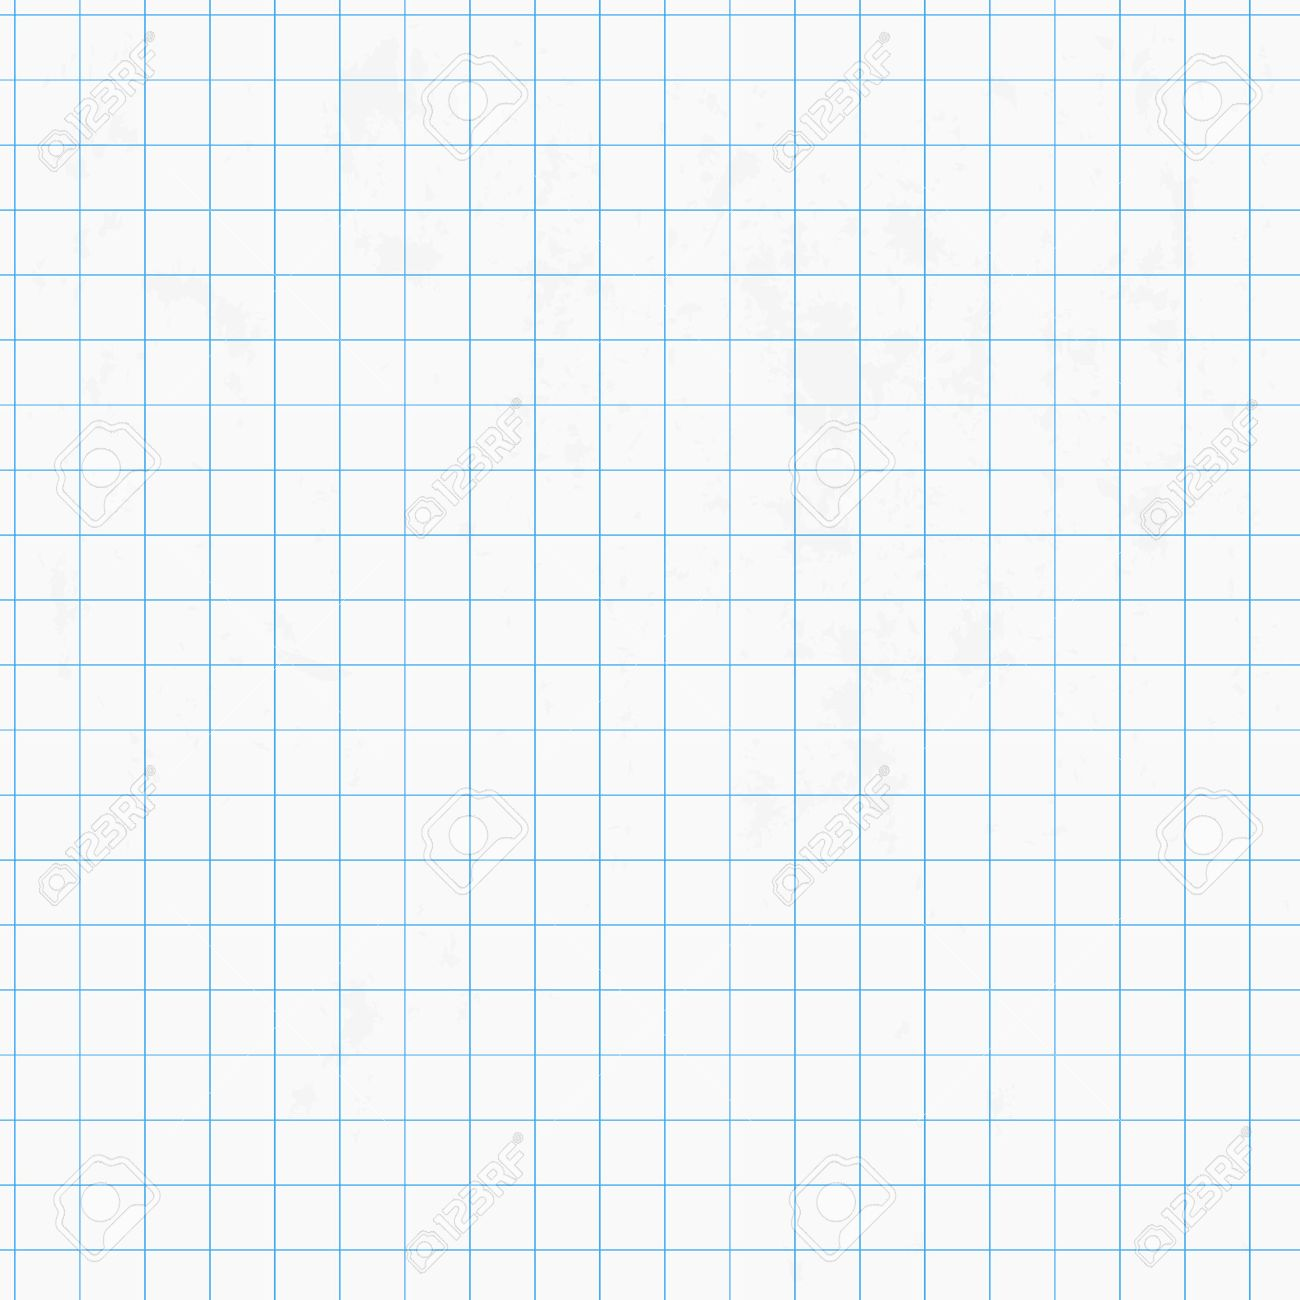 worksheet Graph Paper Print Out white squared graph paper seamless sheet texture royalty free stock vector 59495833